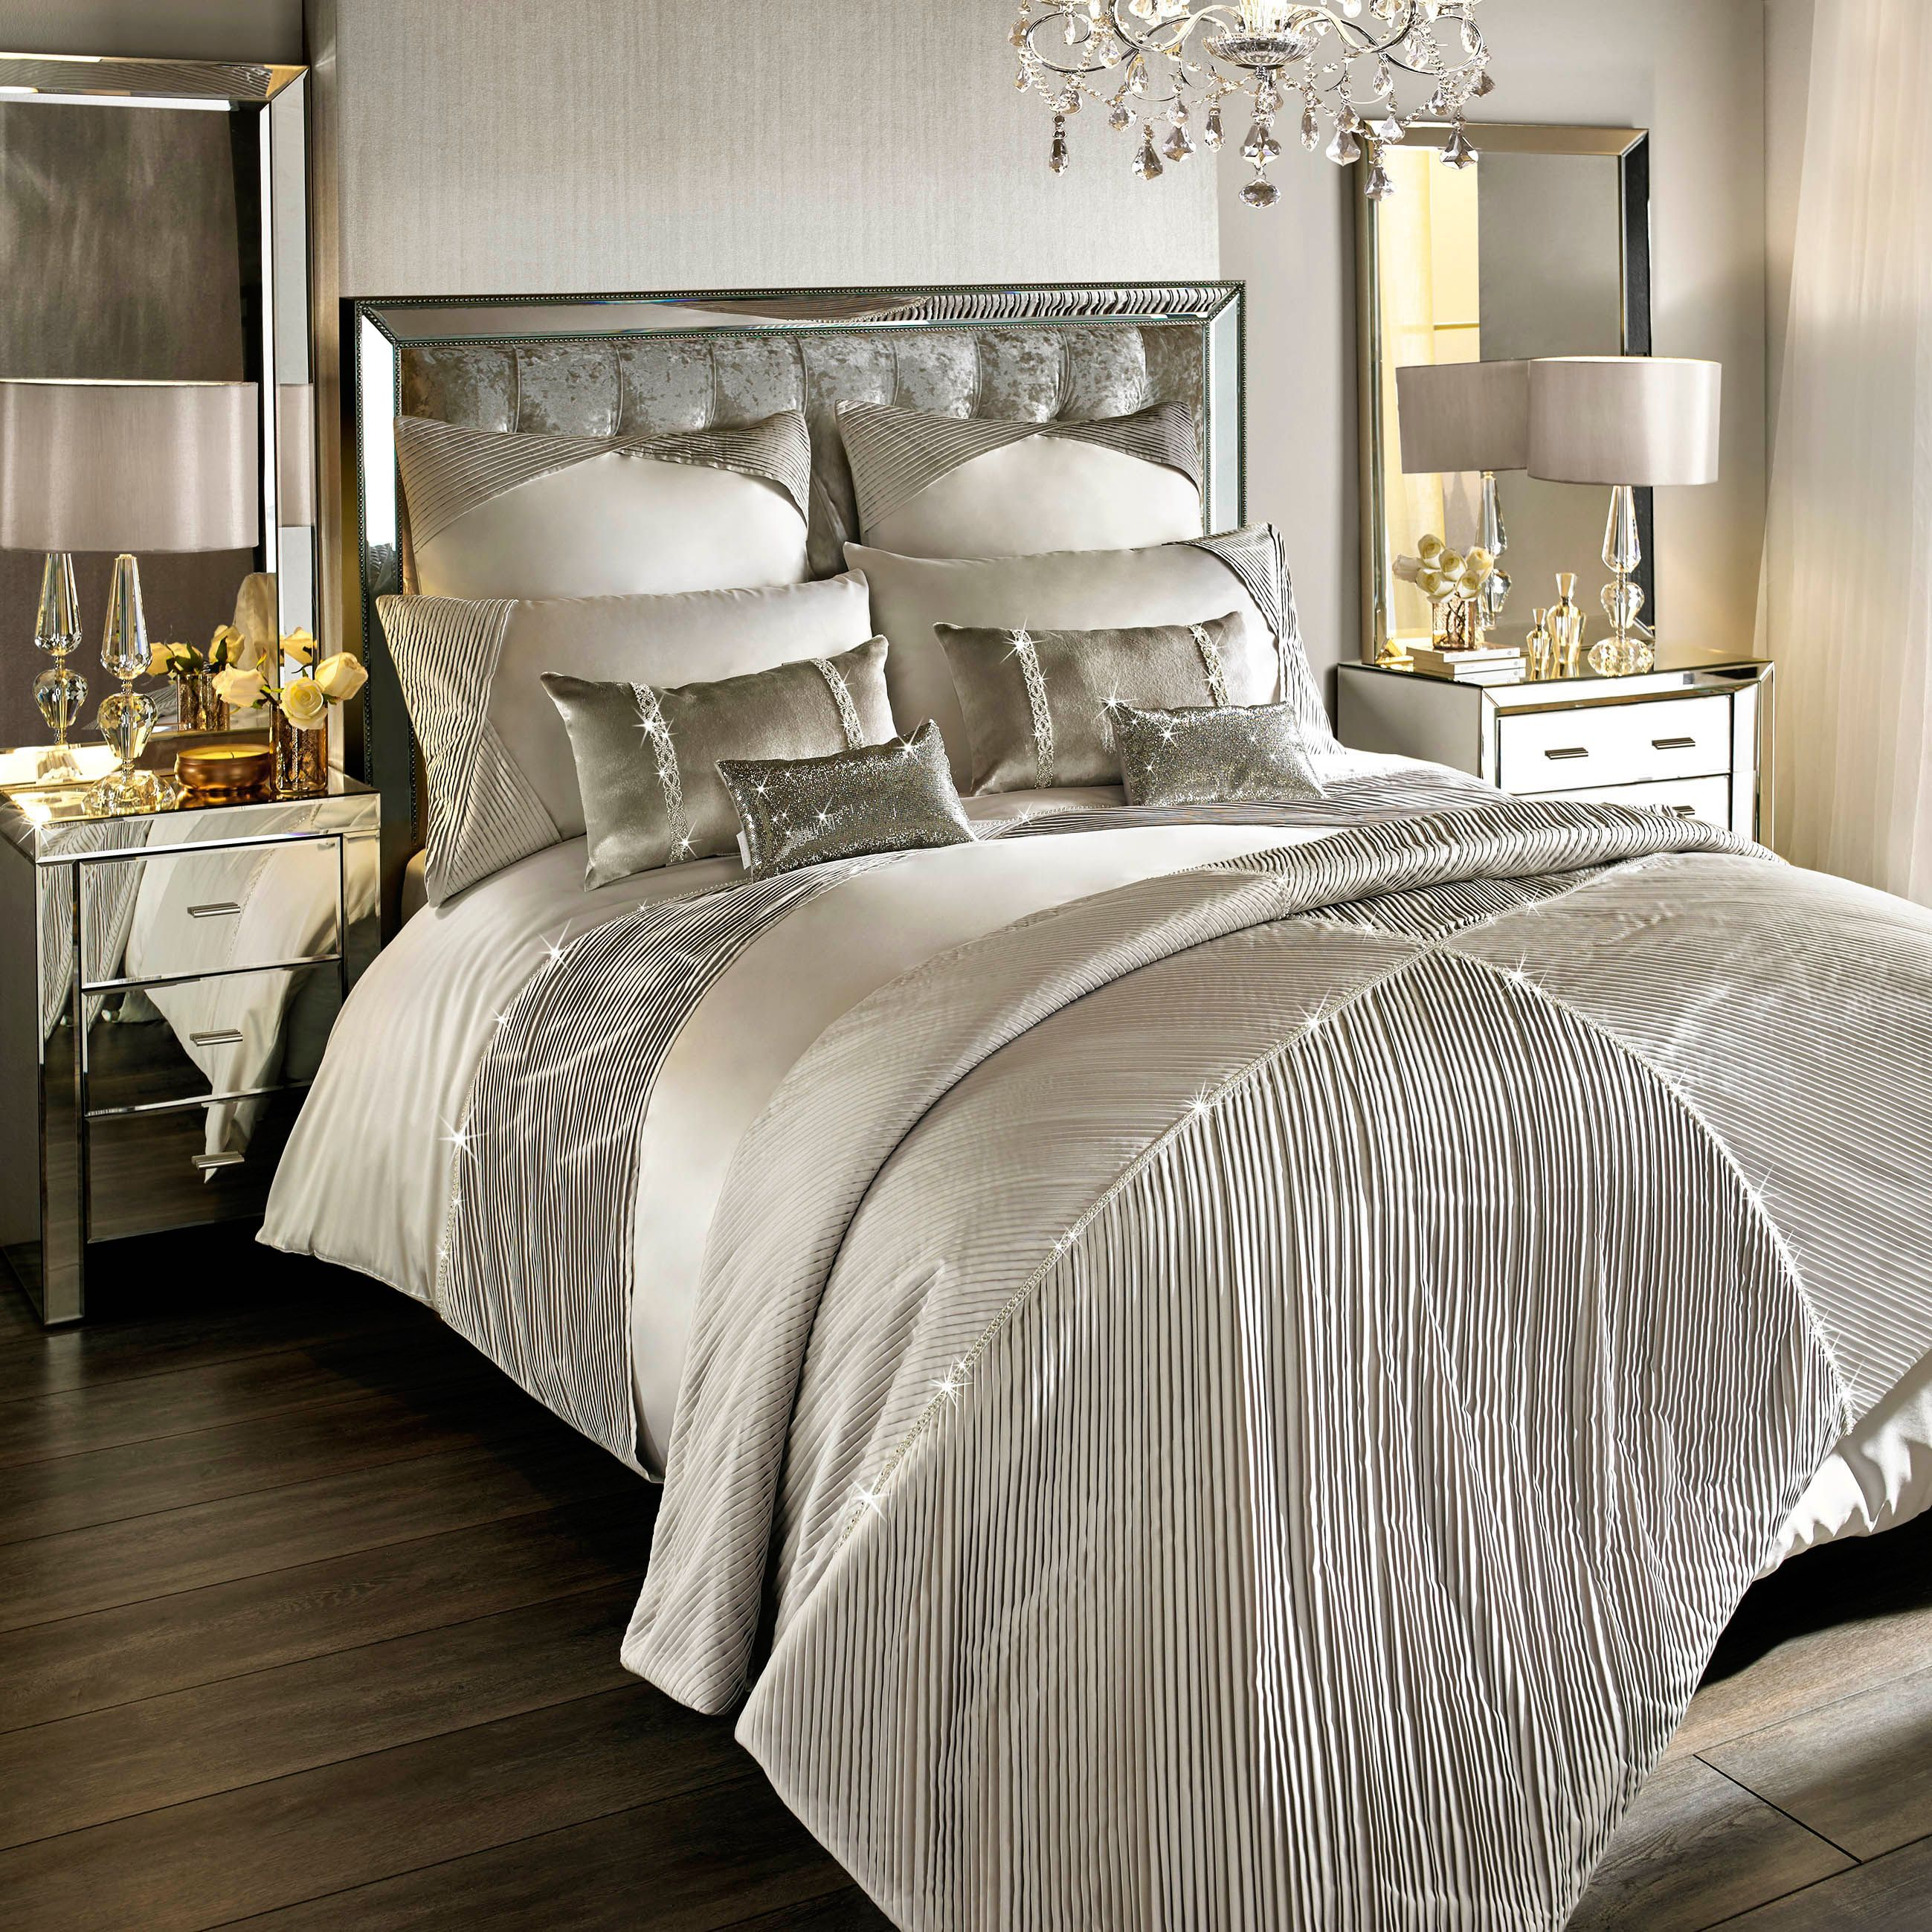 Wonderful House Of Fraser Bed Linen Sets Part - 4: Buy Your Kylie Minogue Omara Champagne Duvet Cover Online Now At House Of  Fraser. Why